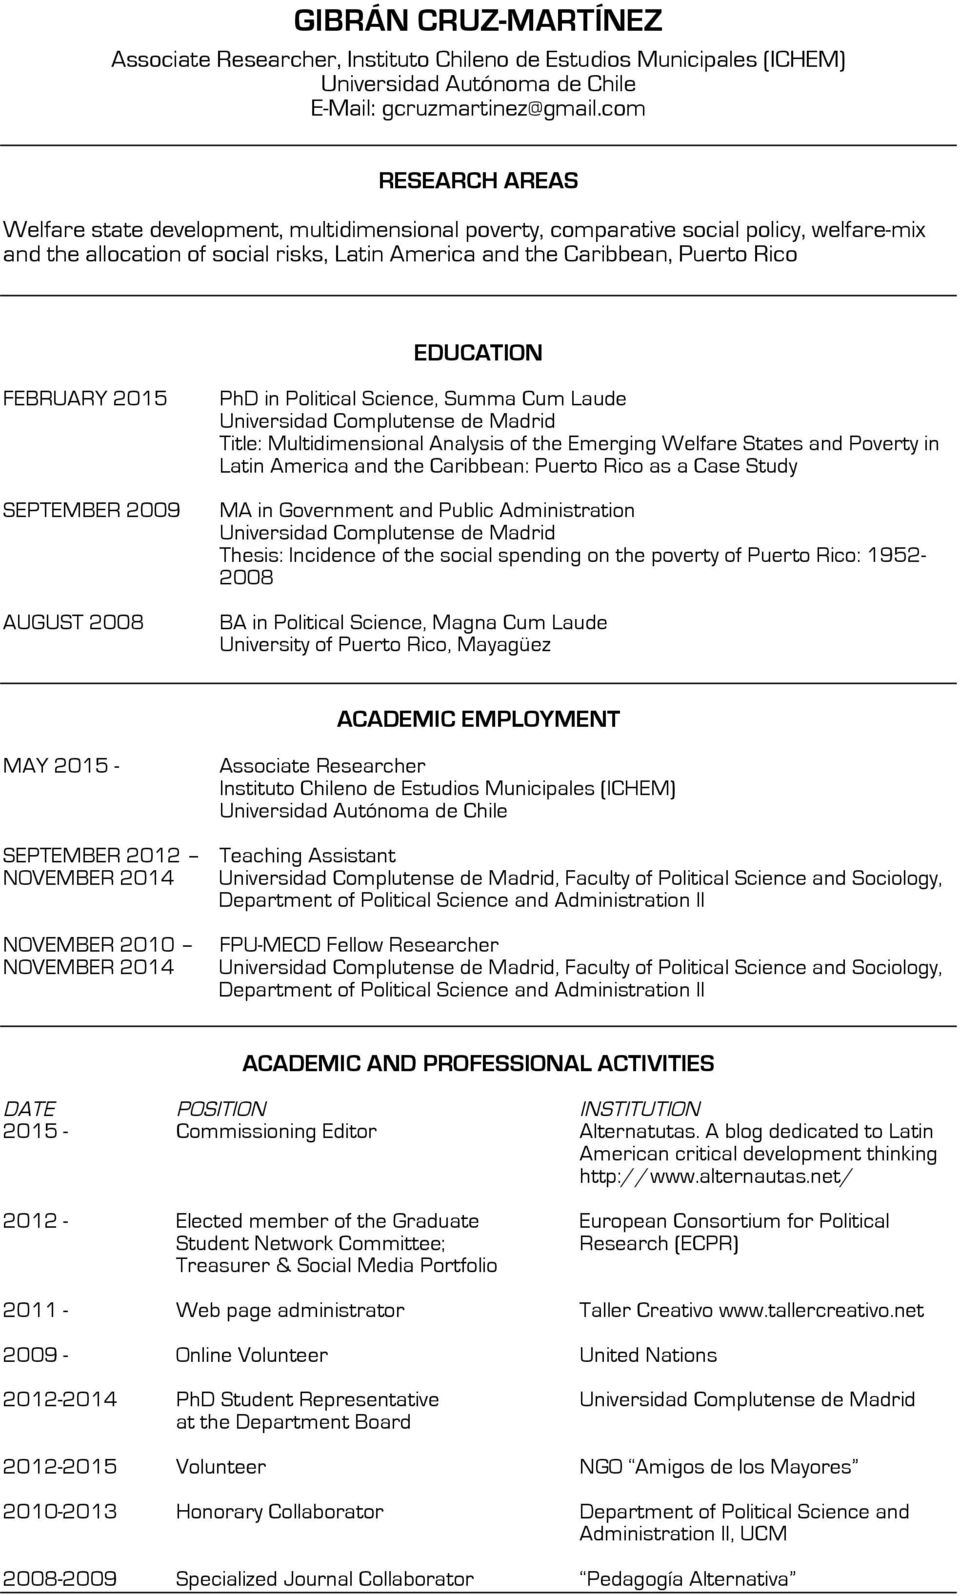 EDUCATION EBRUARY 2015 SEPTEMBER 2009 AUGUST 2008 PhD in Political Science, Summa Cum Laude Universidad Complutense de Madrid Title: Multidimensional Analysis of the Emerging Welfare States and